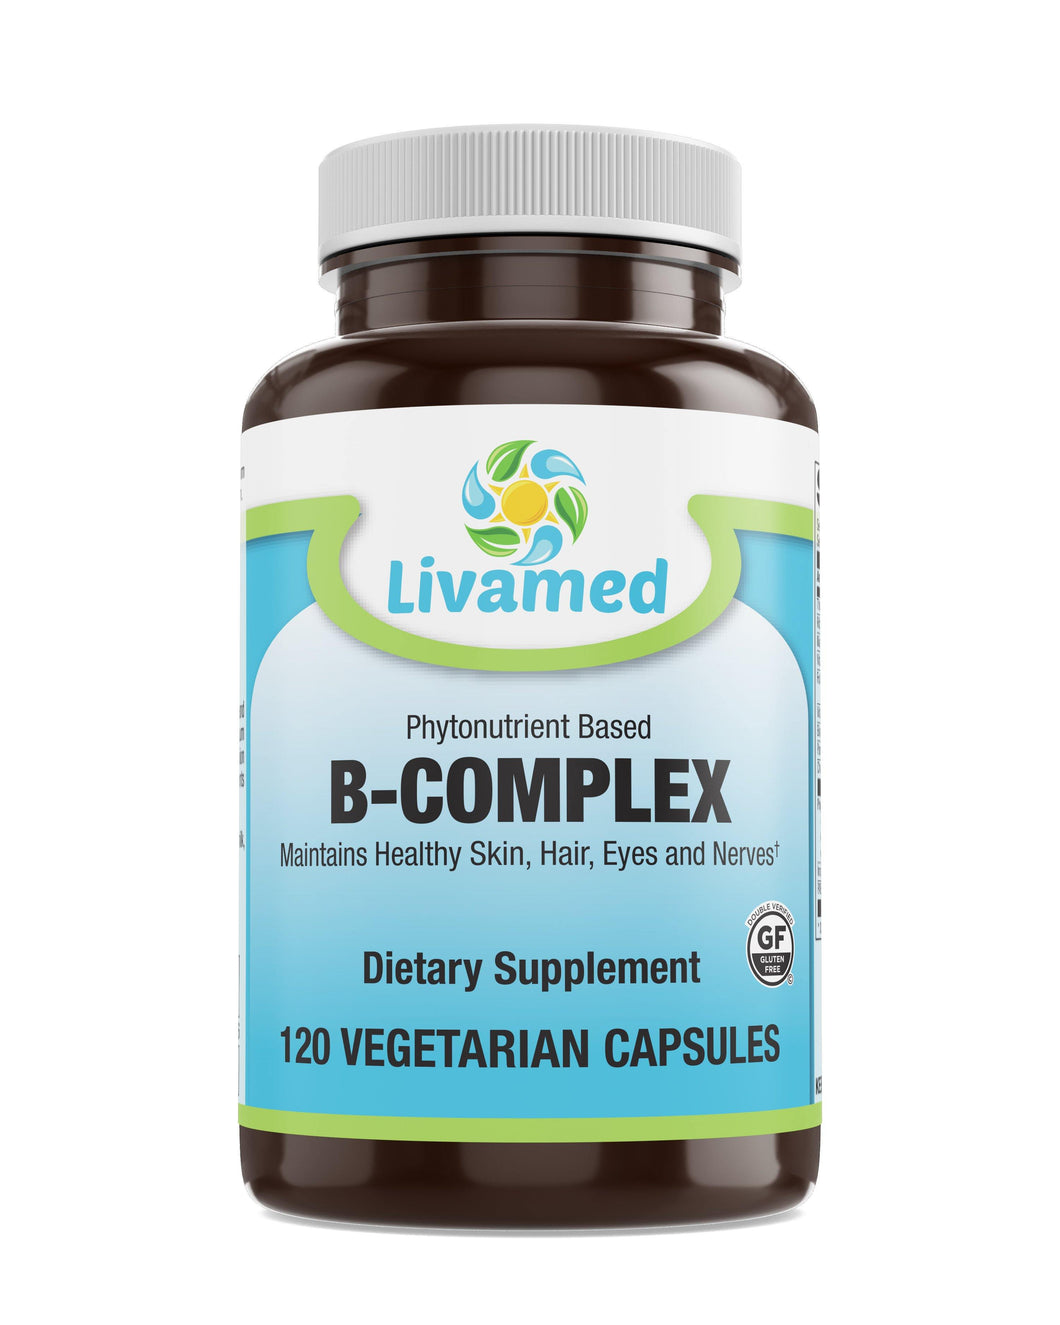 Livamed - Phytonutrient Based B-Complex Veg Caps  120 Count - Livamed Vitamins